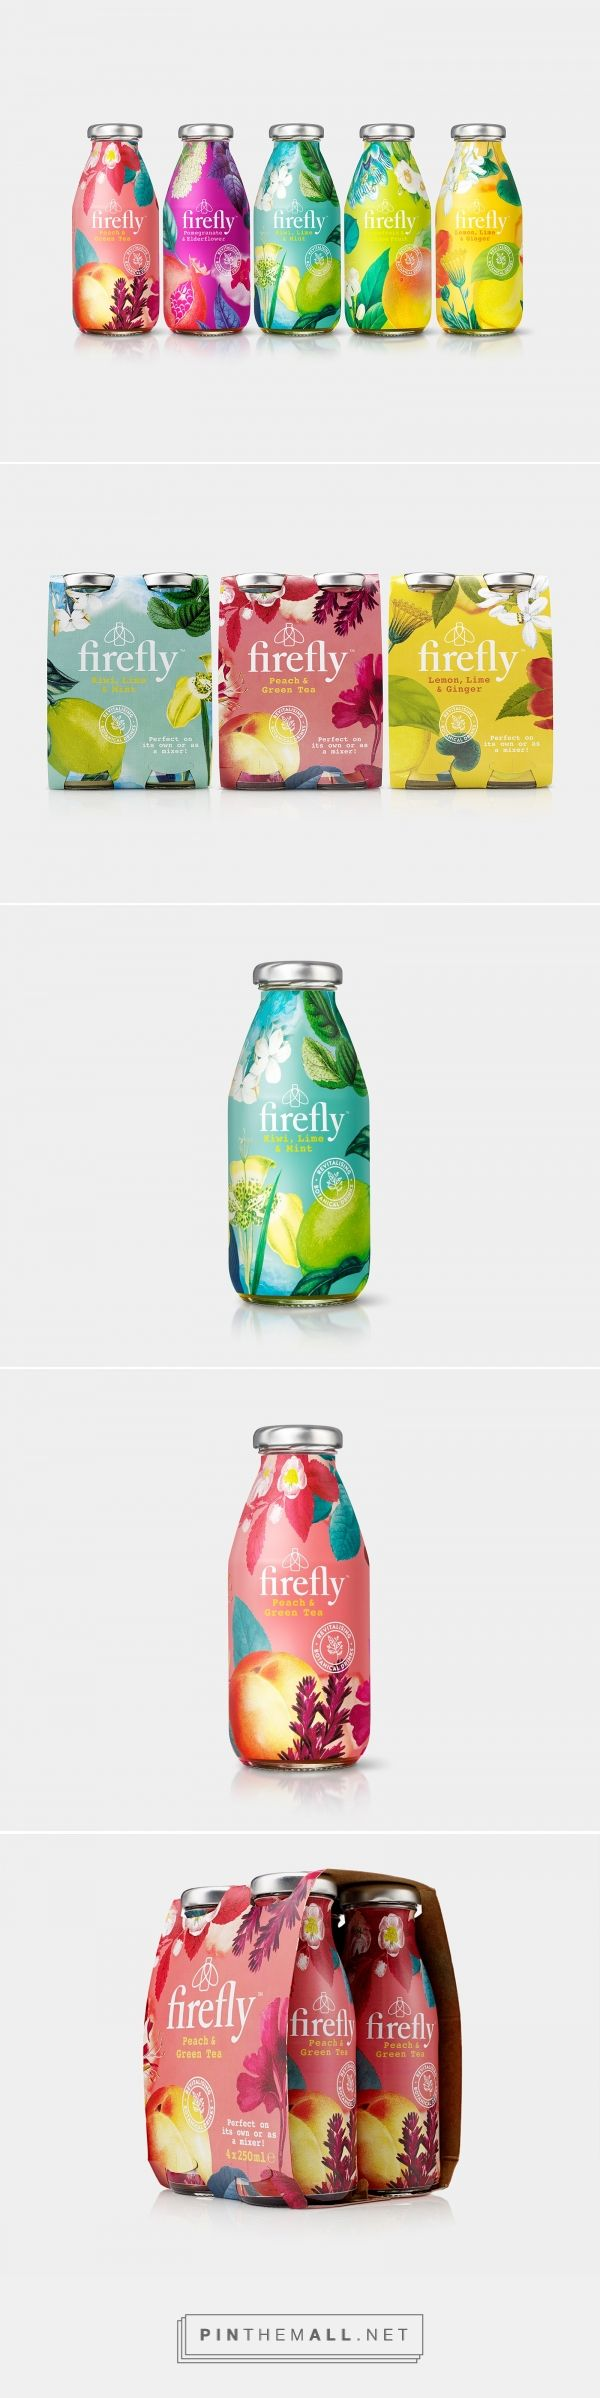 Firefly drinks packaging design by B&B studio - https://www.packagingoftheworld.com/2018/02/firefly.html